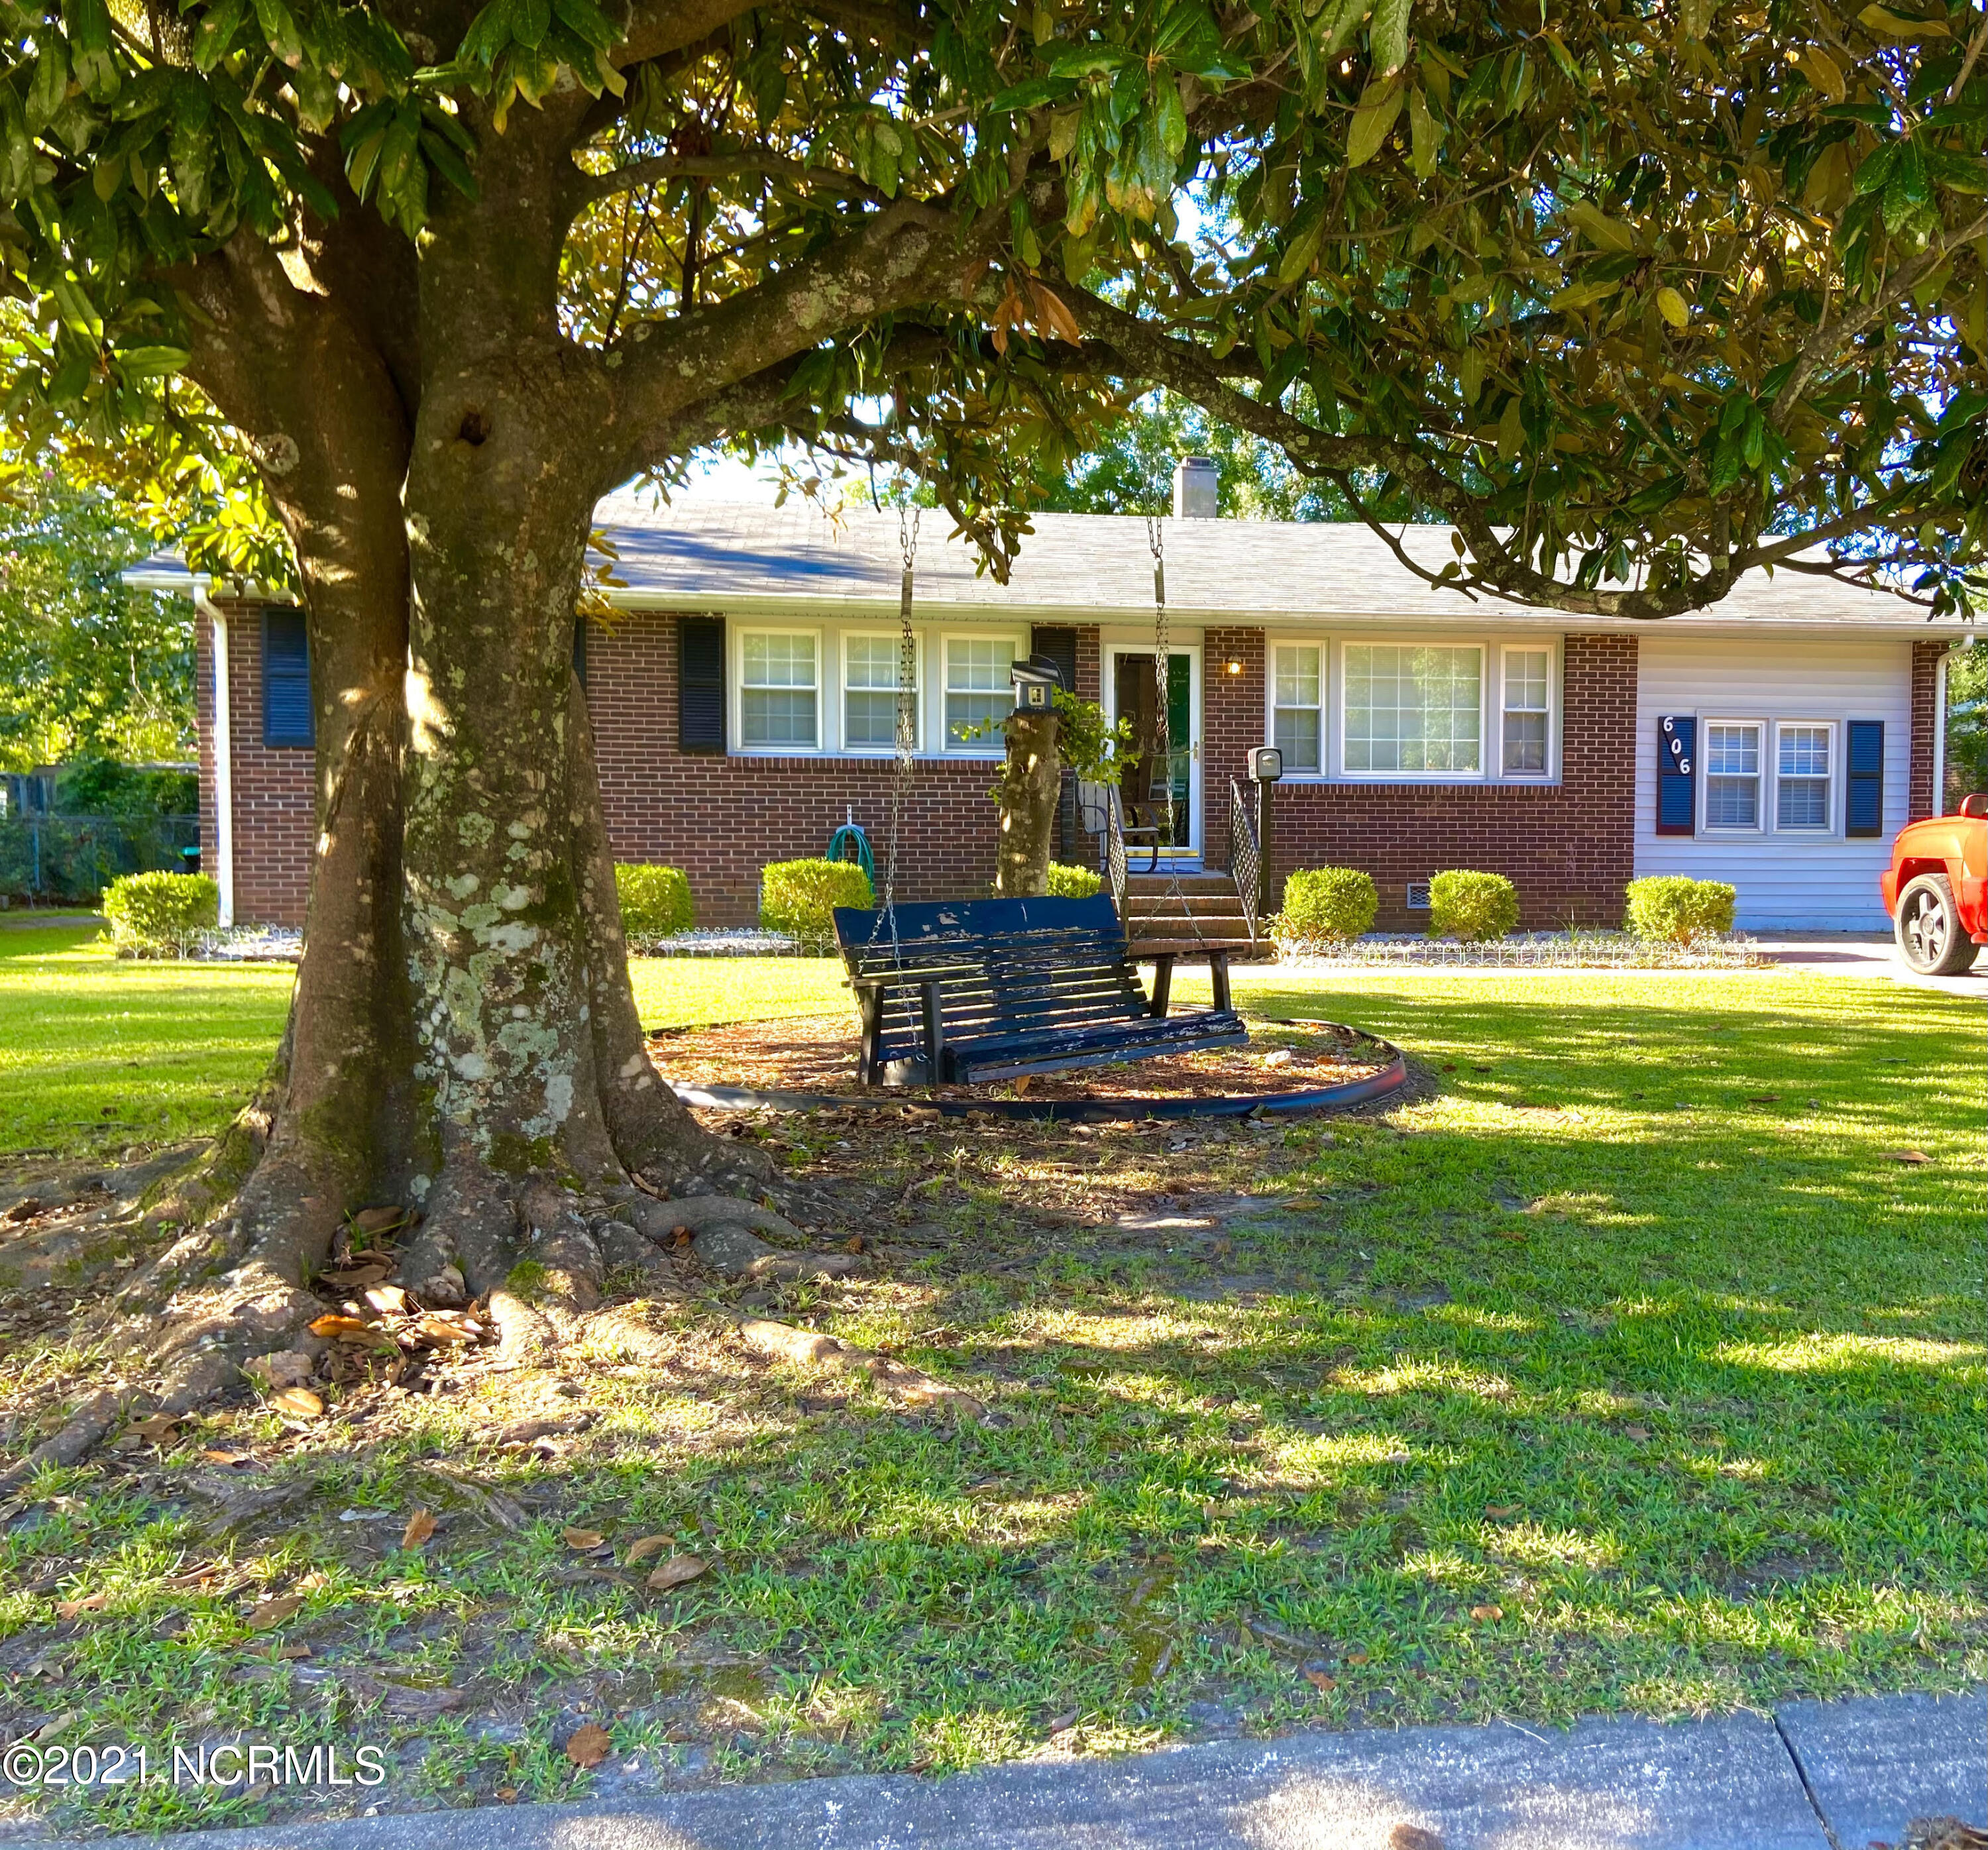 Welcome to 606 Forest Grove Avenue! You will be delighted when you arrive at this home to see it beautifully shaded by trees with a swing out front! There are 4 bedrooms, 2 bathrooms, and an absolutely gorgeous back yard. For being inside city limits, you will be shocked at how much yard there is out back. The roof AND HVAC are only around 6 years old.  The owner has upgraded and updated the house so much, you will enjoy every step you take! Also, you won't know what to do with all of the parking space that this house provides! Schedule your showing ASAP, since it's going to go quick! ** Seller providing a $650 home warranty****Front door locks upon shutting, no need to manually lock. See Showingtime for code. Key in lockbox is for the back door in case the front door gets locked by previous agent**